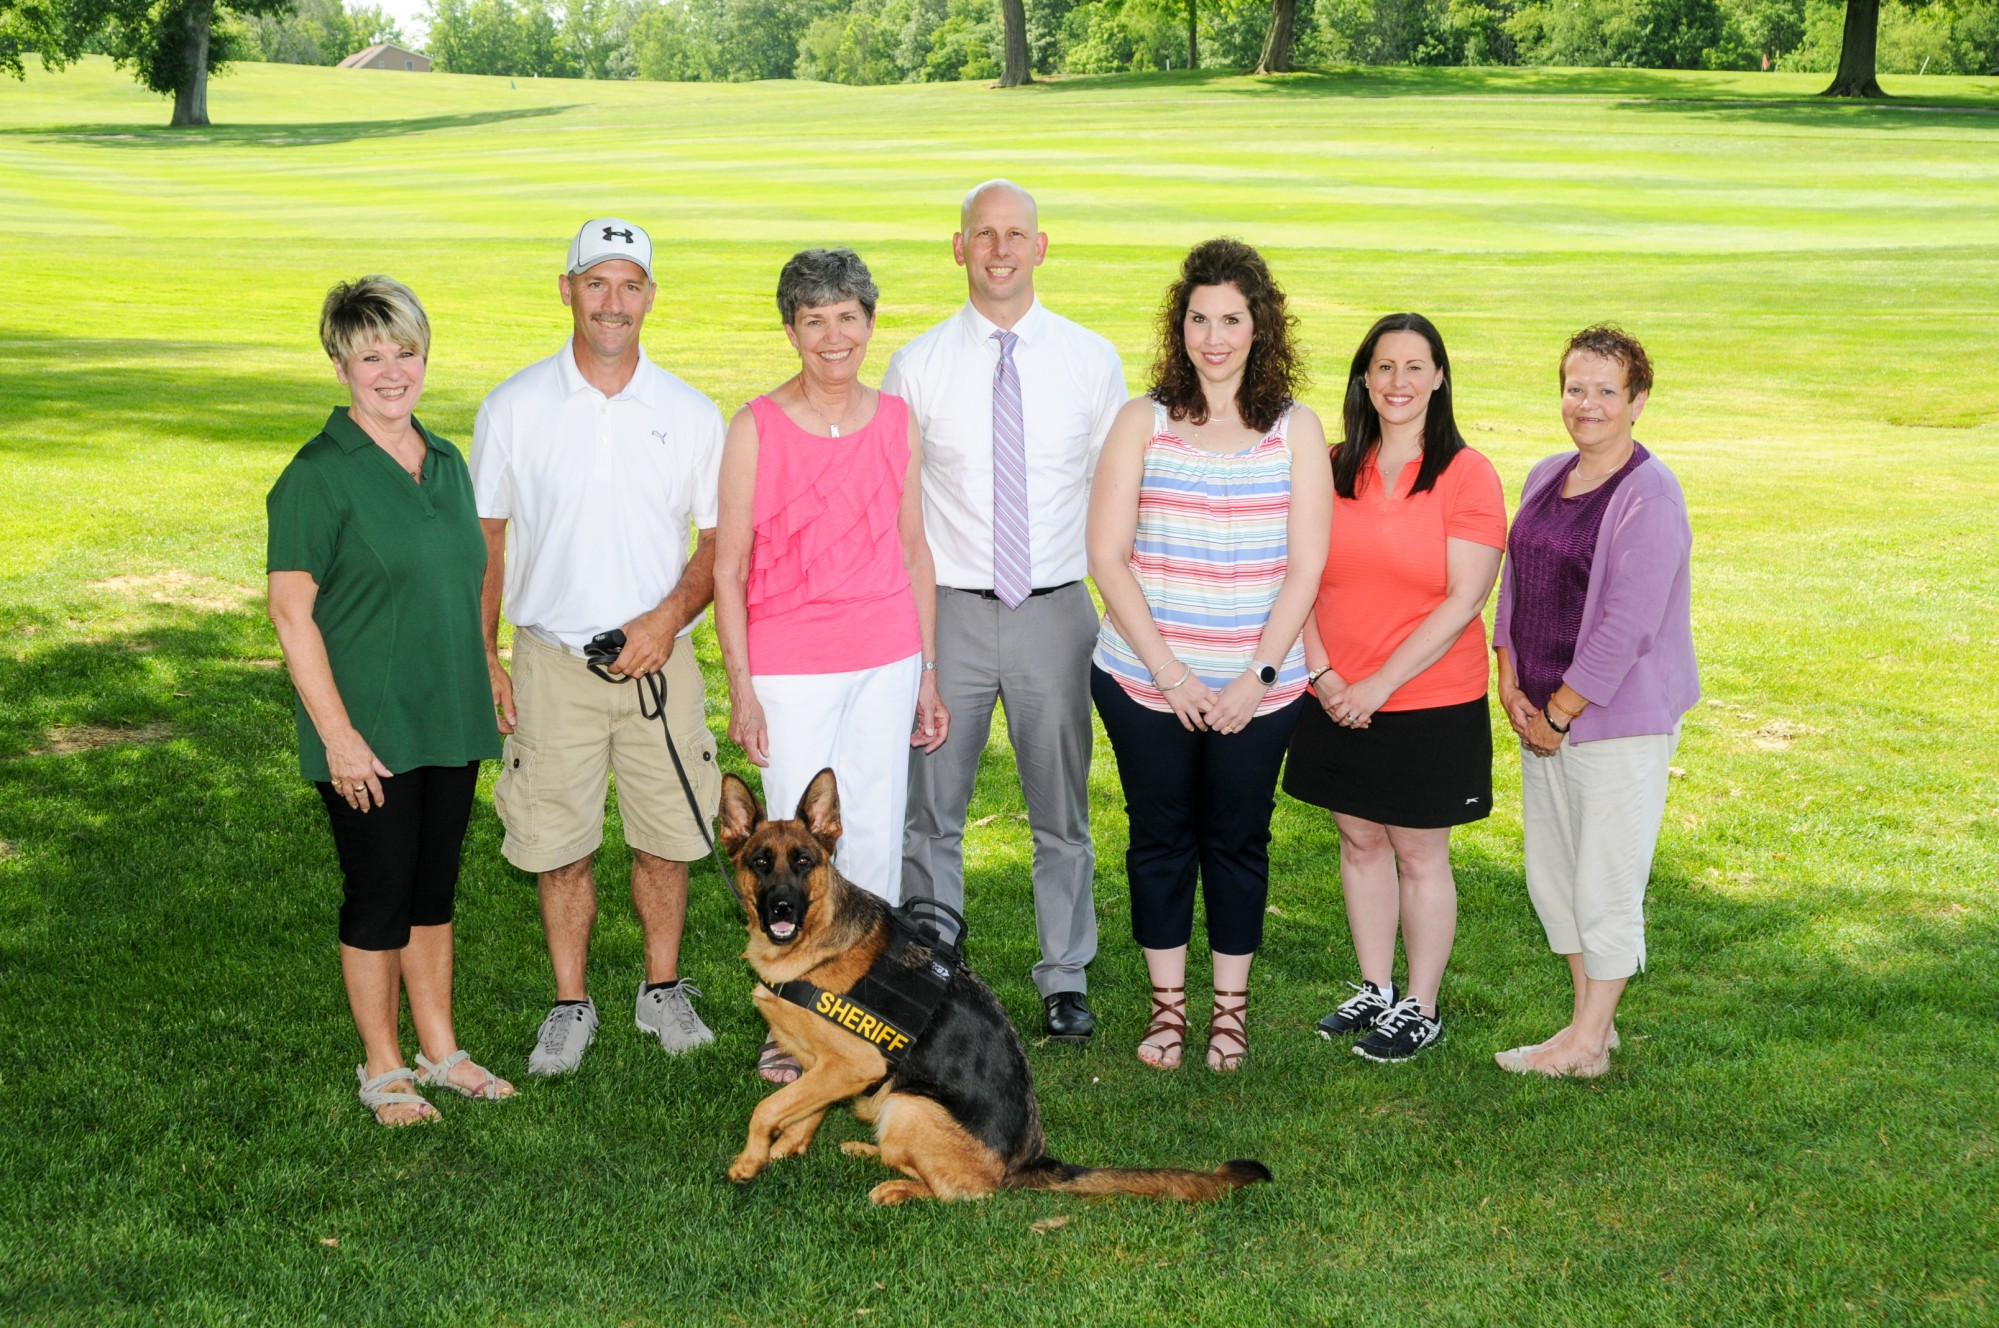 Samaritan Hospital Foundation Charity Golf Classic Raises $41,500 to Support Local Initiatives